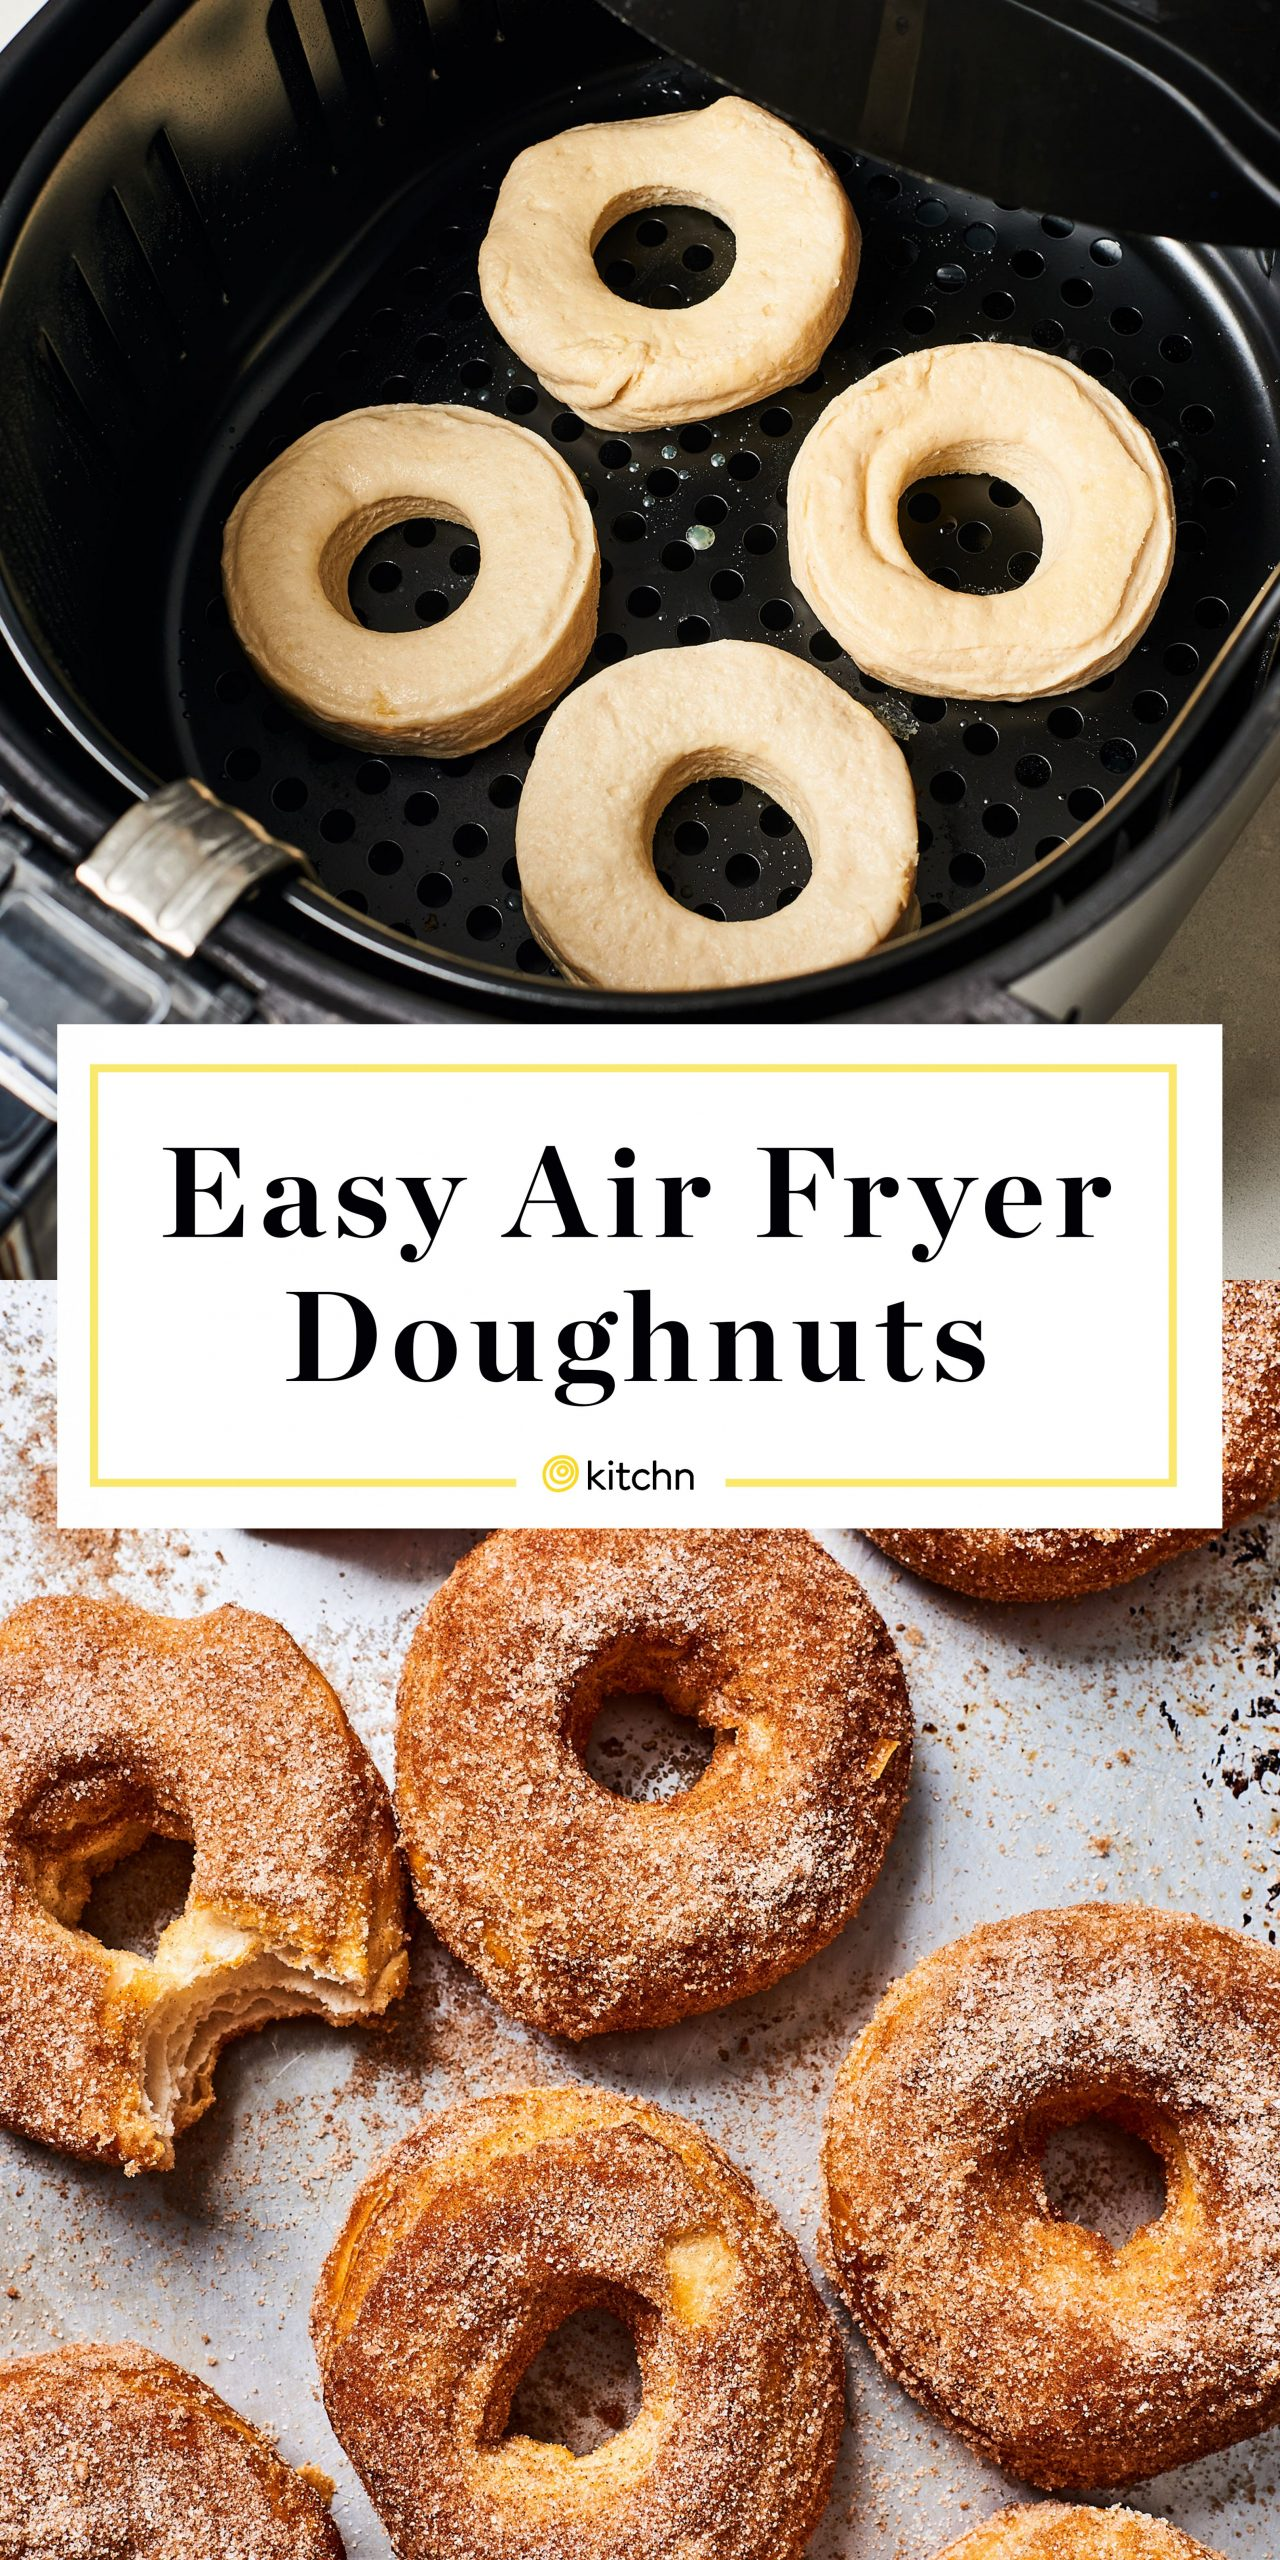 Easy Air Fryer Donuts - Dessert Recipes In Air Fryer